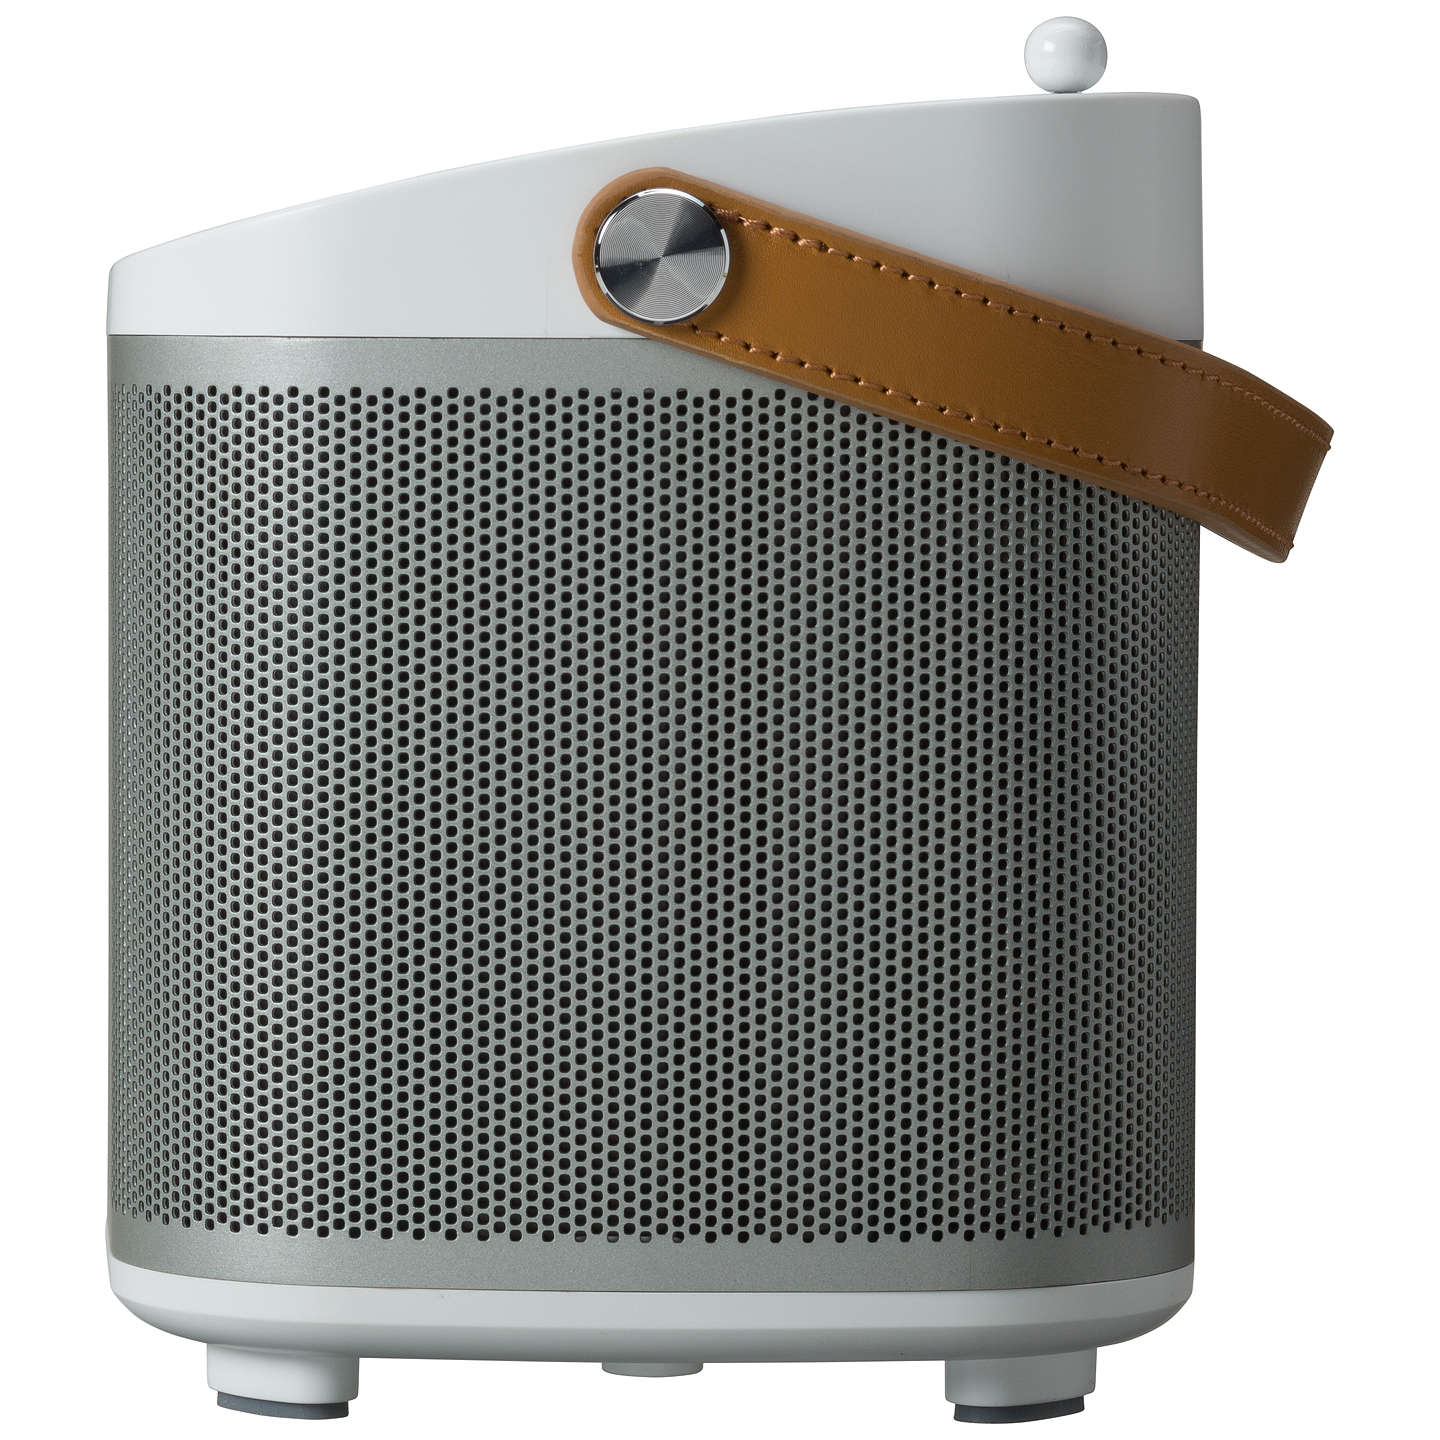 BuyROBERTS R100 Multi-room Speaker Base Station with DAB/DAB+/FM Radio, Bluetooth Online at johnlewis.com